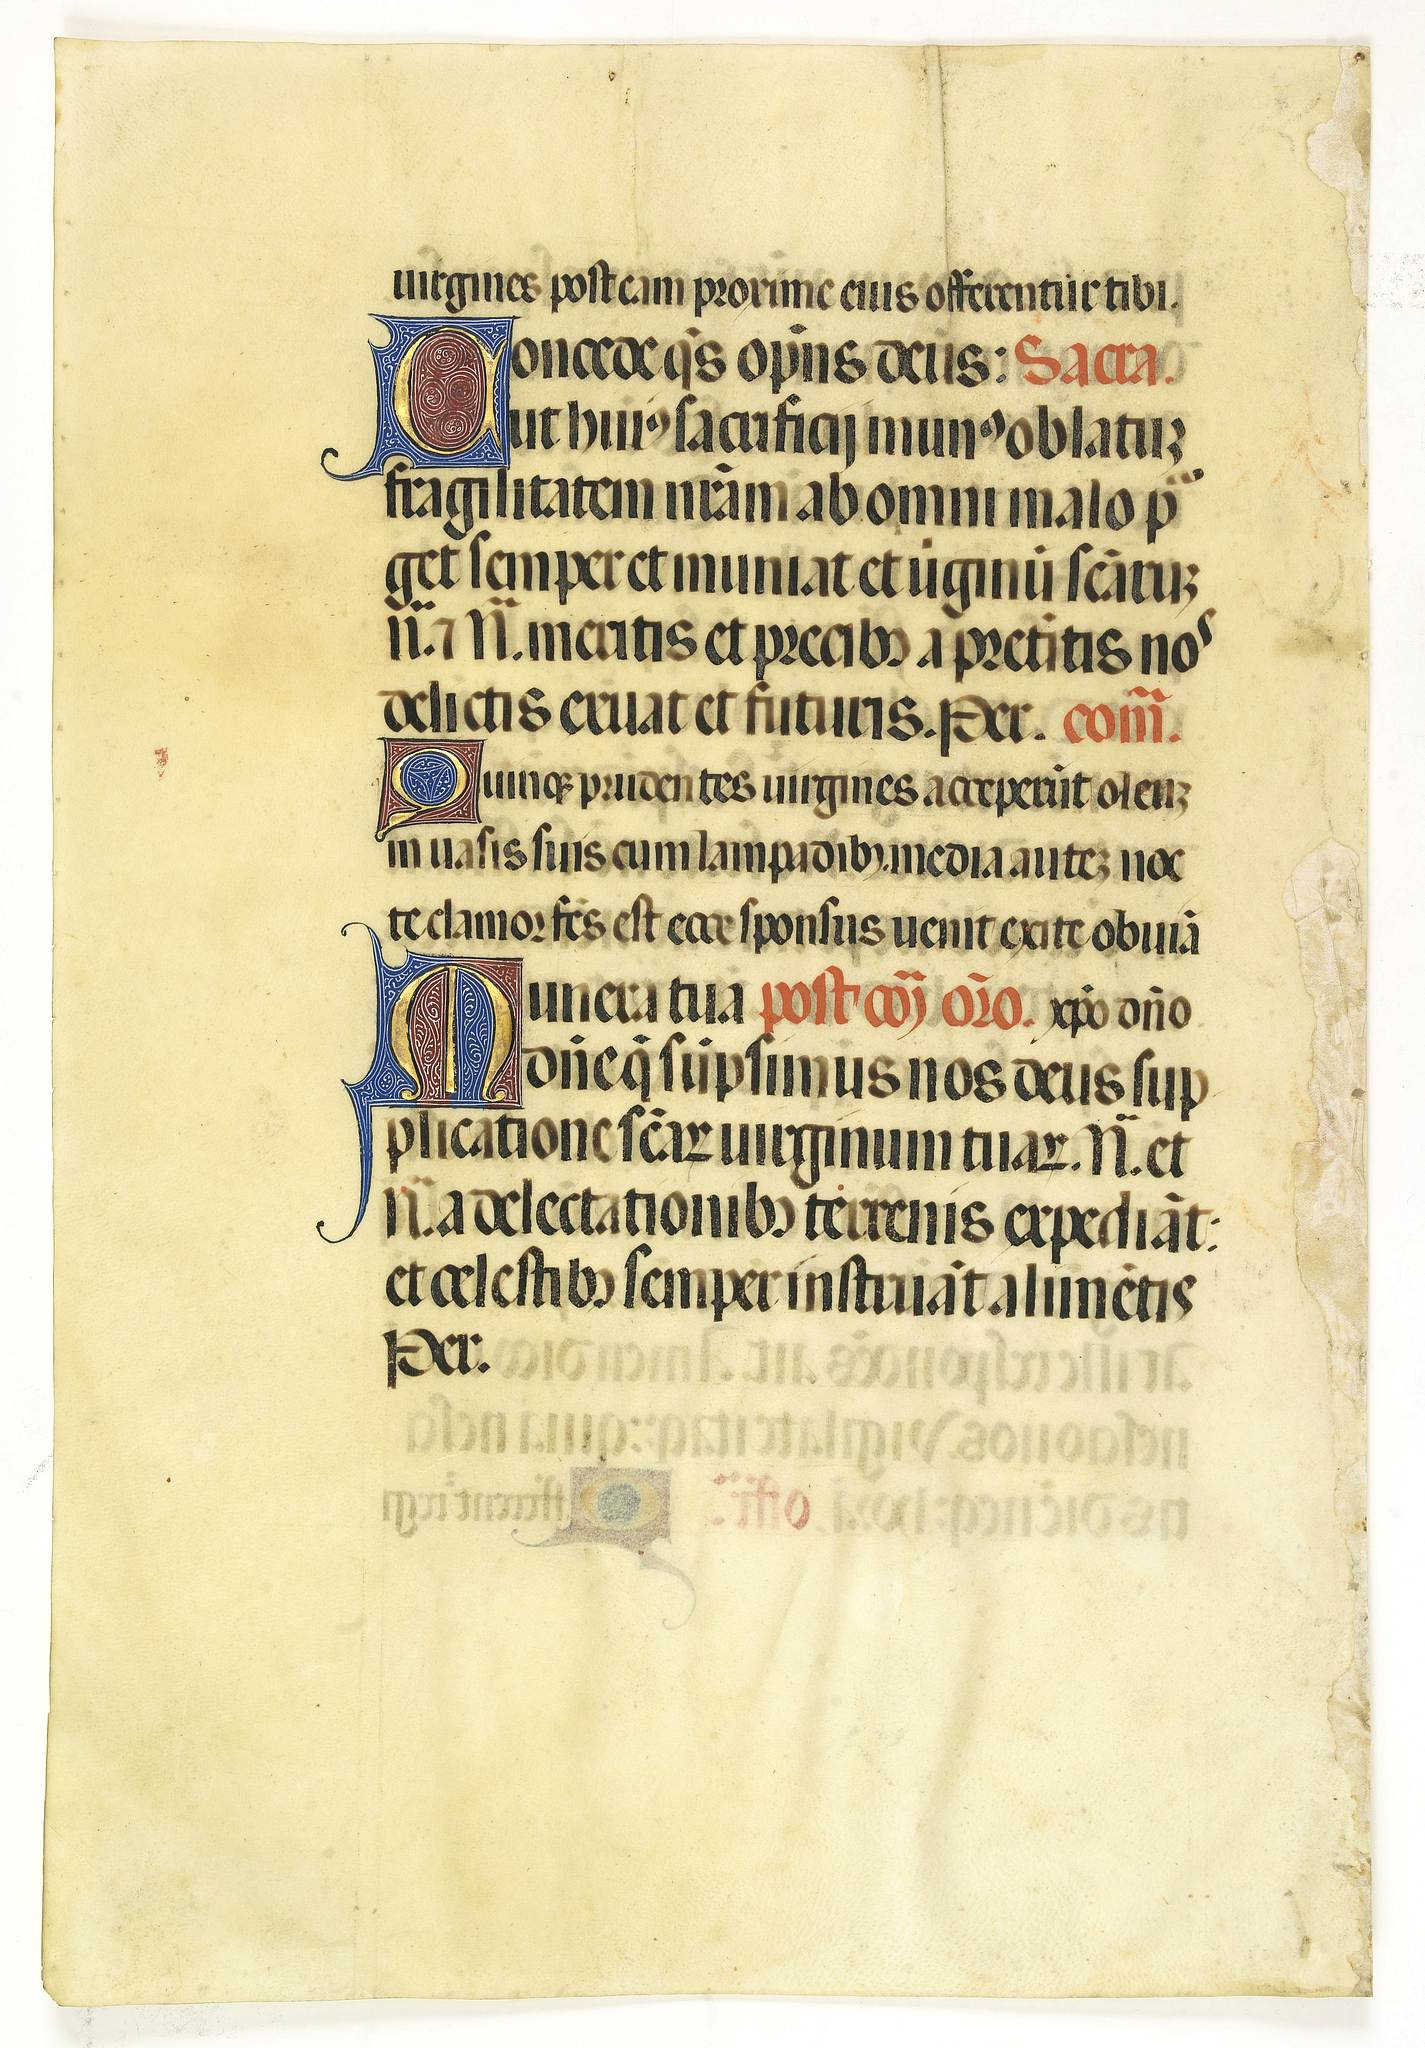 MISSAL. -  Leaf on vellum from a Missal.